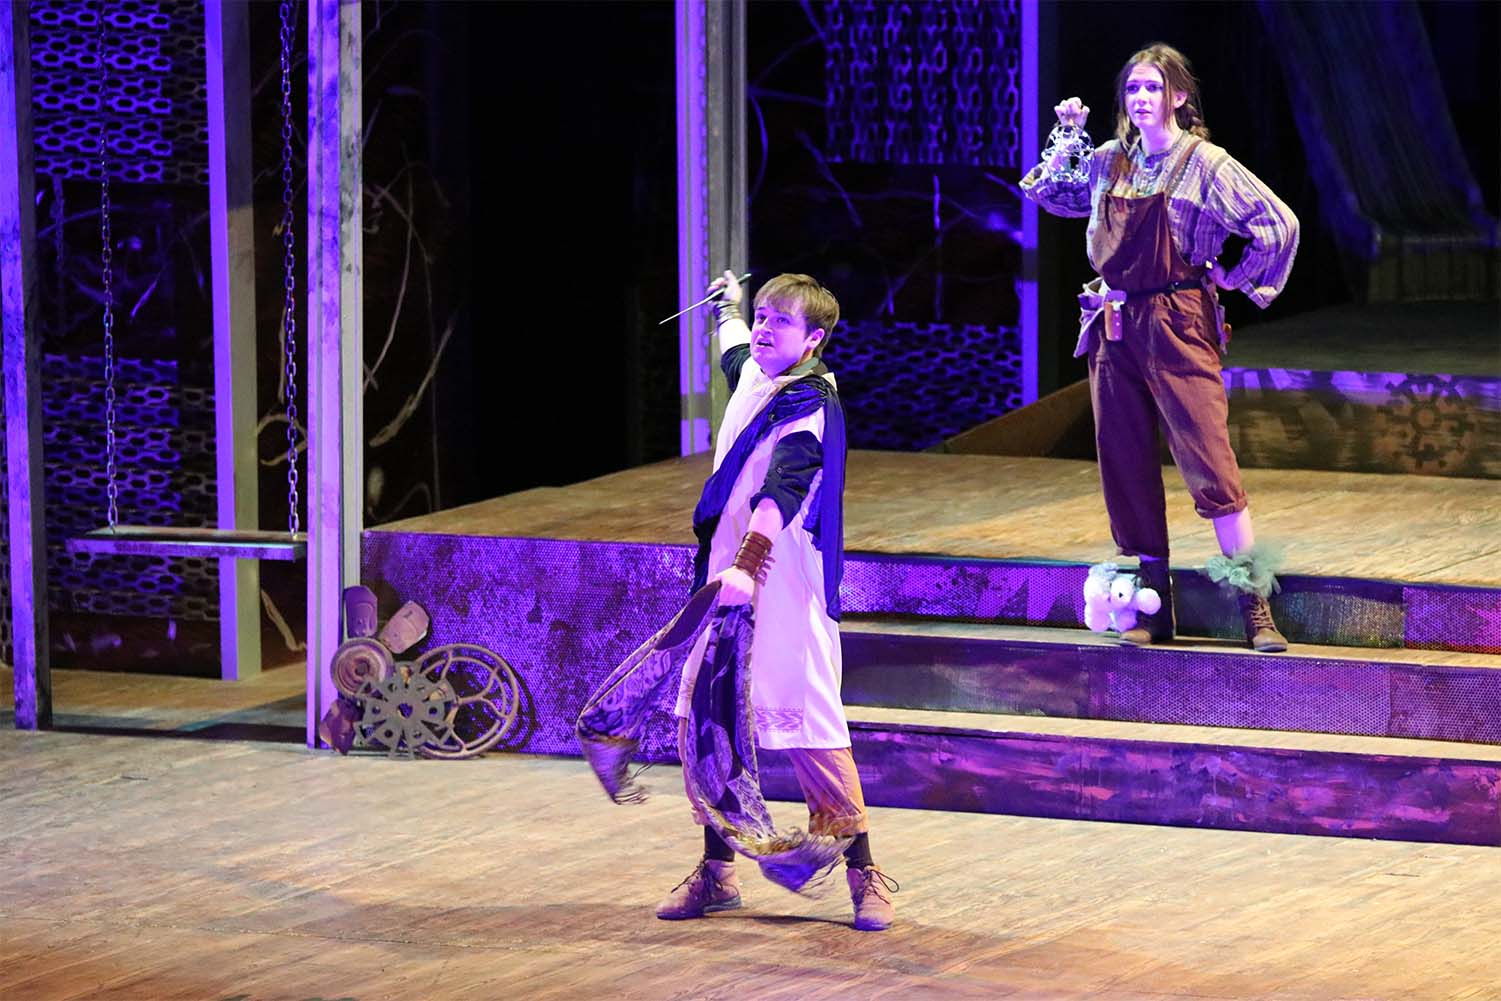 David Pisoni, junior, plays Nick Bottom, in A Midsummer Night's Dream. The performance was April 4-7.